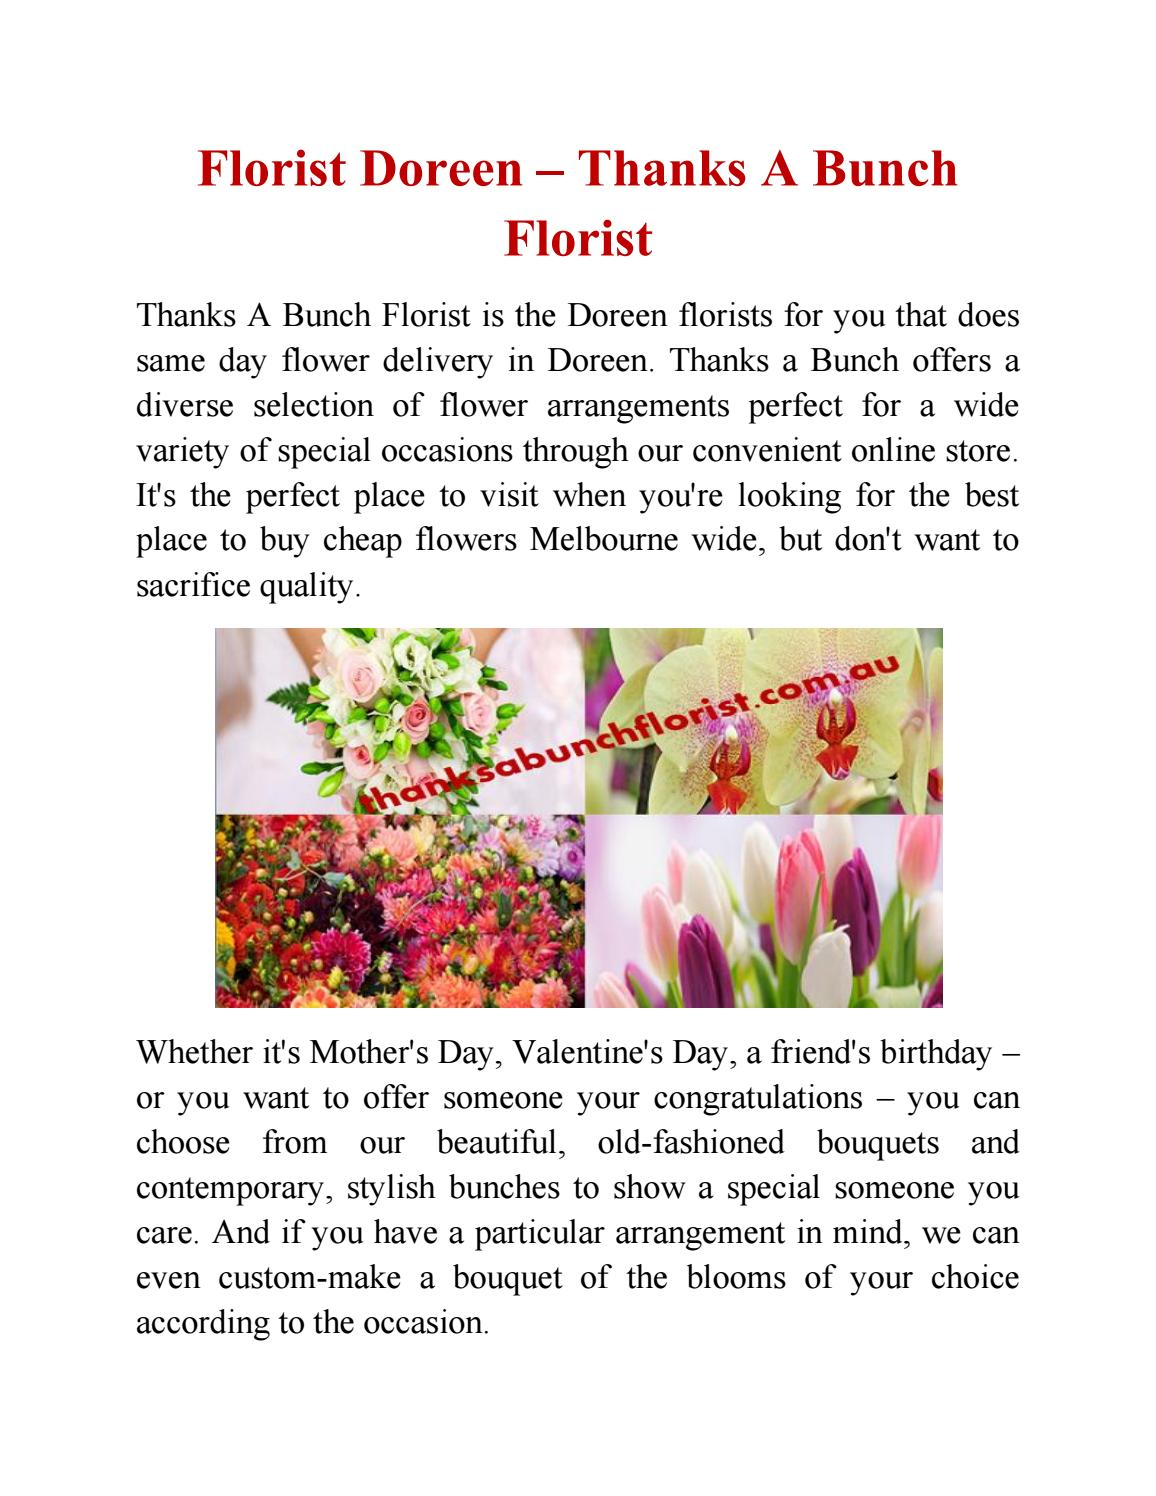 Florist Doreen Thanks A Bunch Florist By Thanks A Bunch Florist